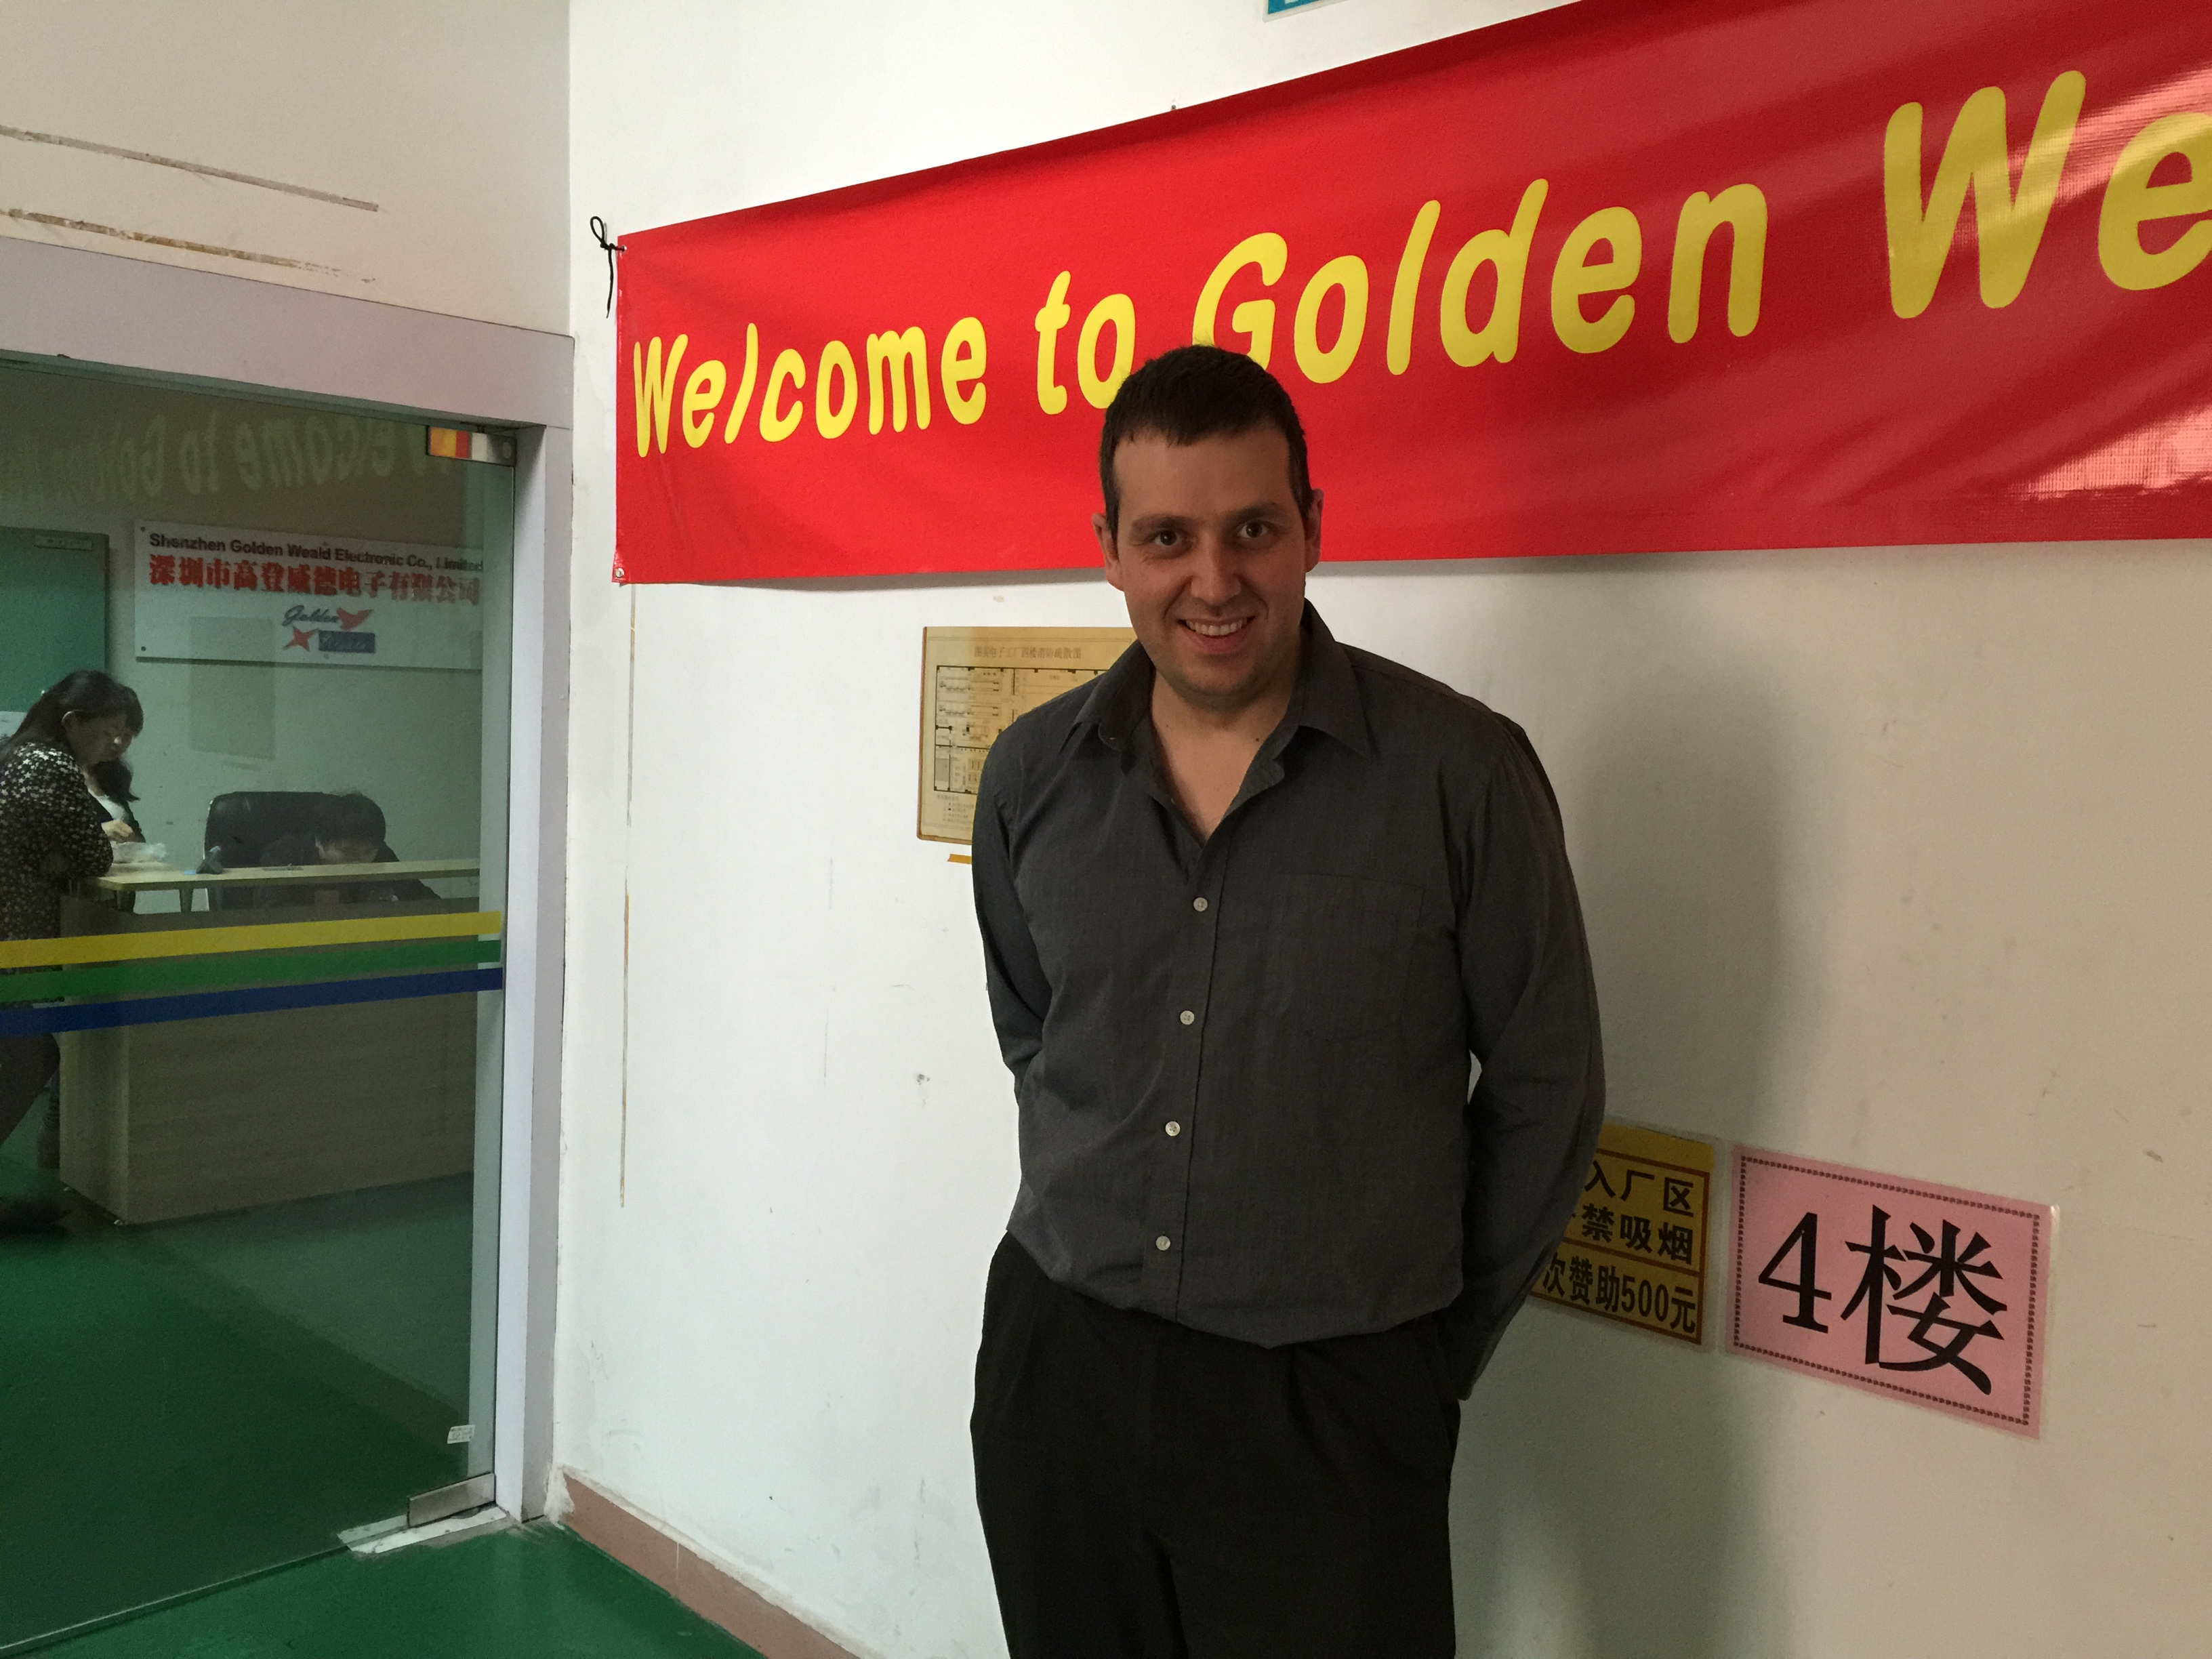 2. 2014 UK customer come to golden weald factory